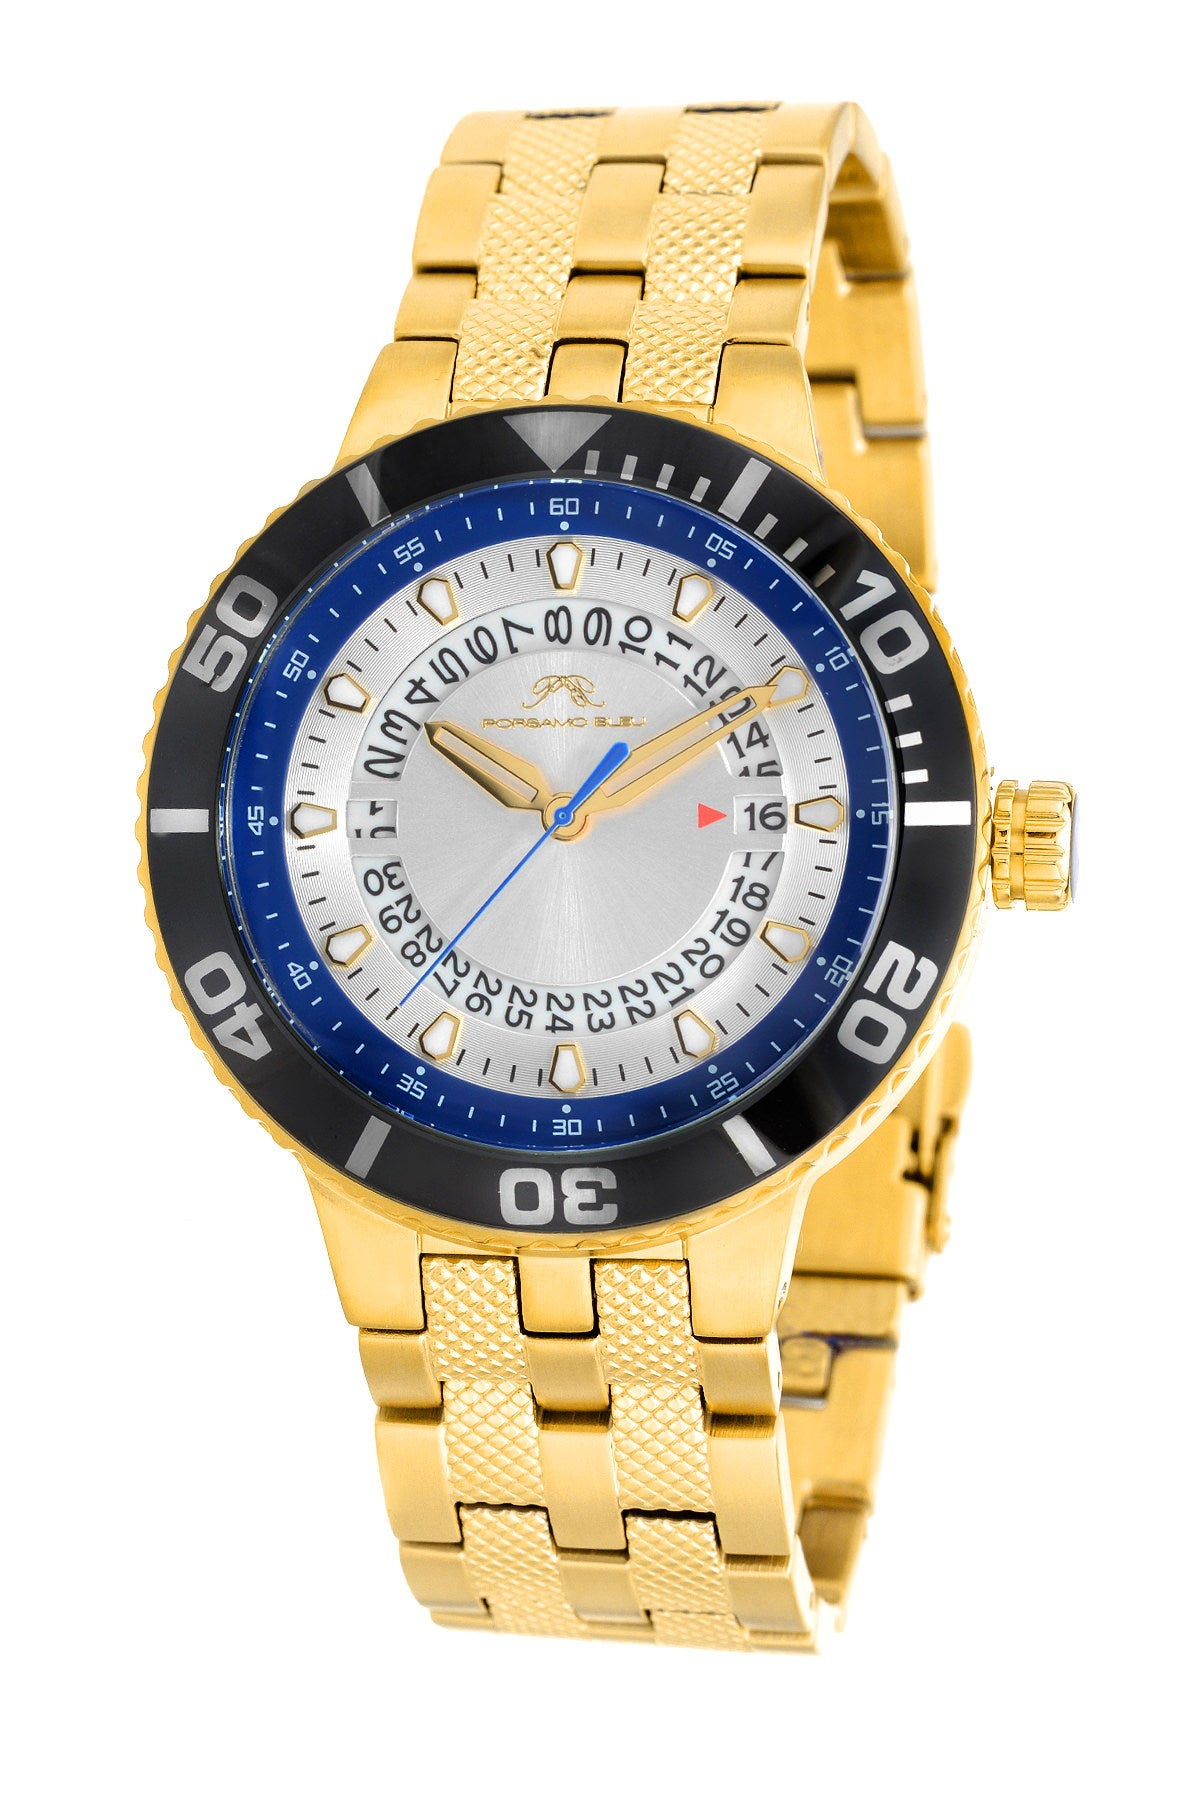 Porsamo Bleu Sebastian luxury men's stainless steel watch, gold, black, blue 462BSES